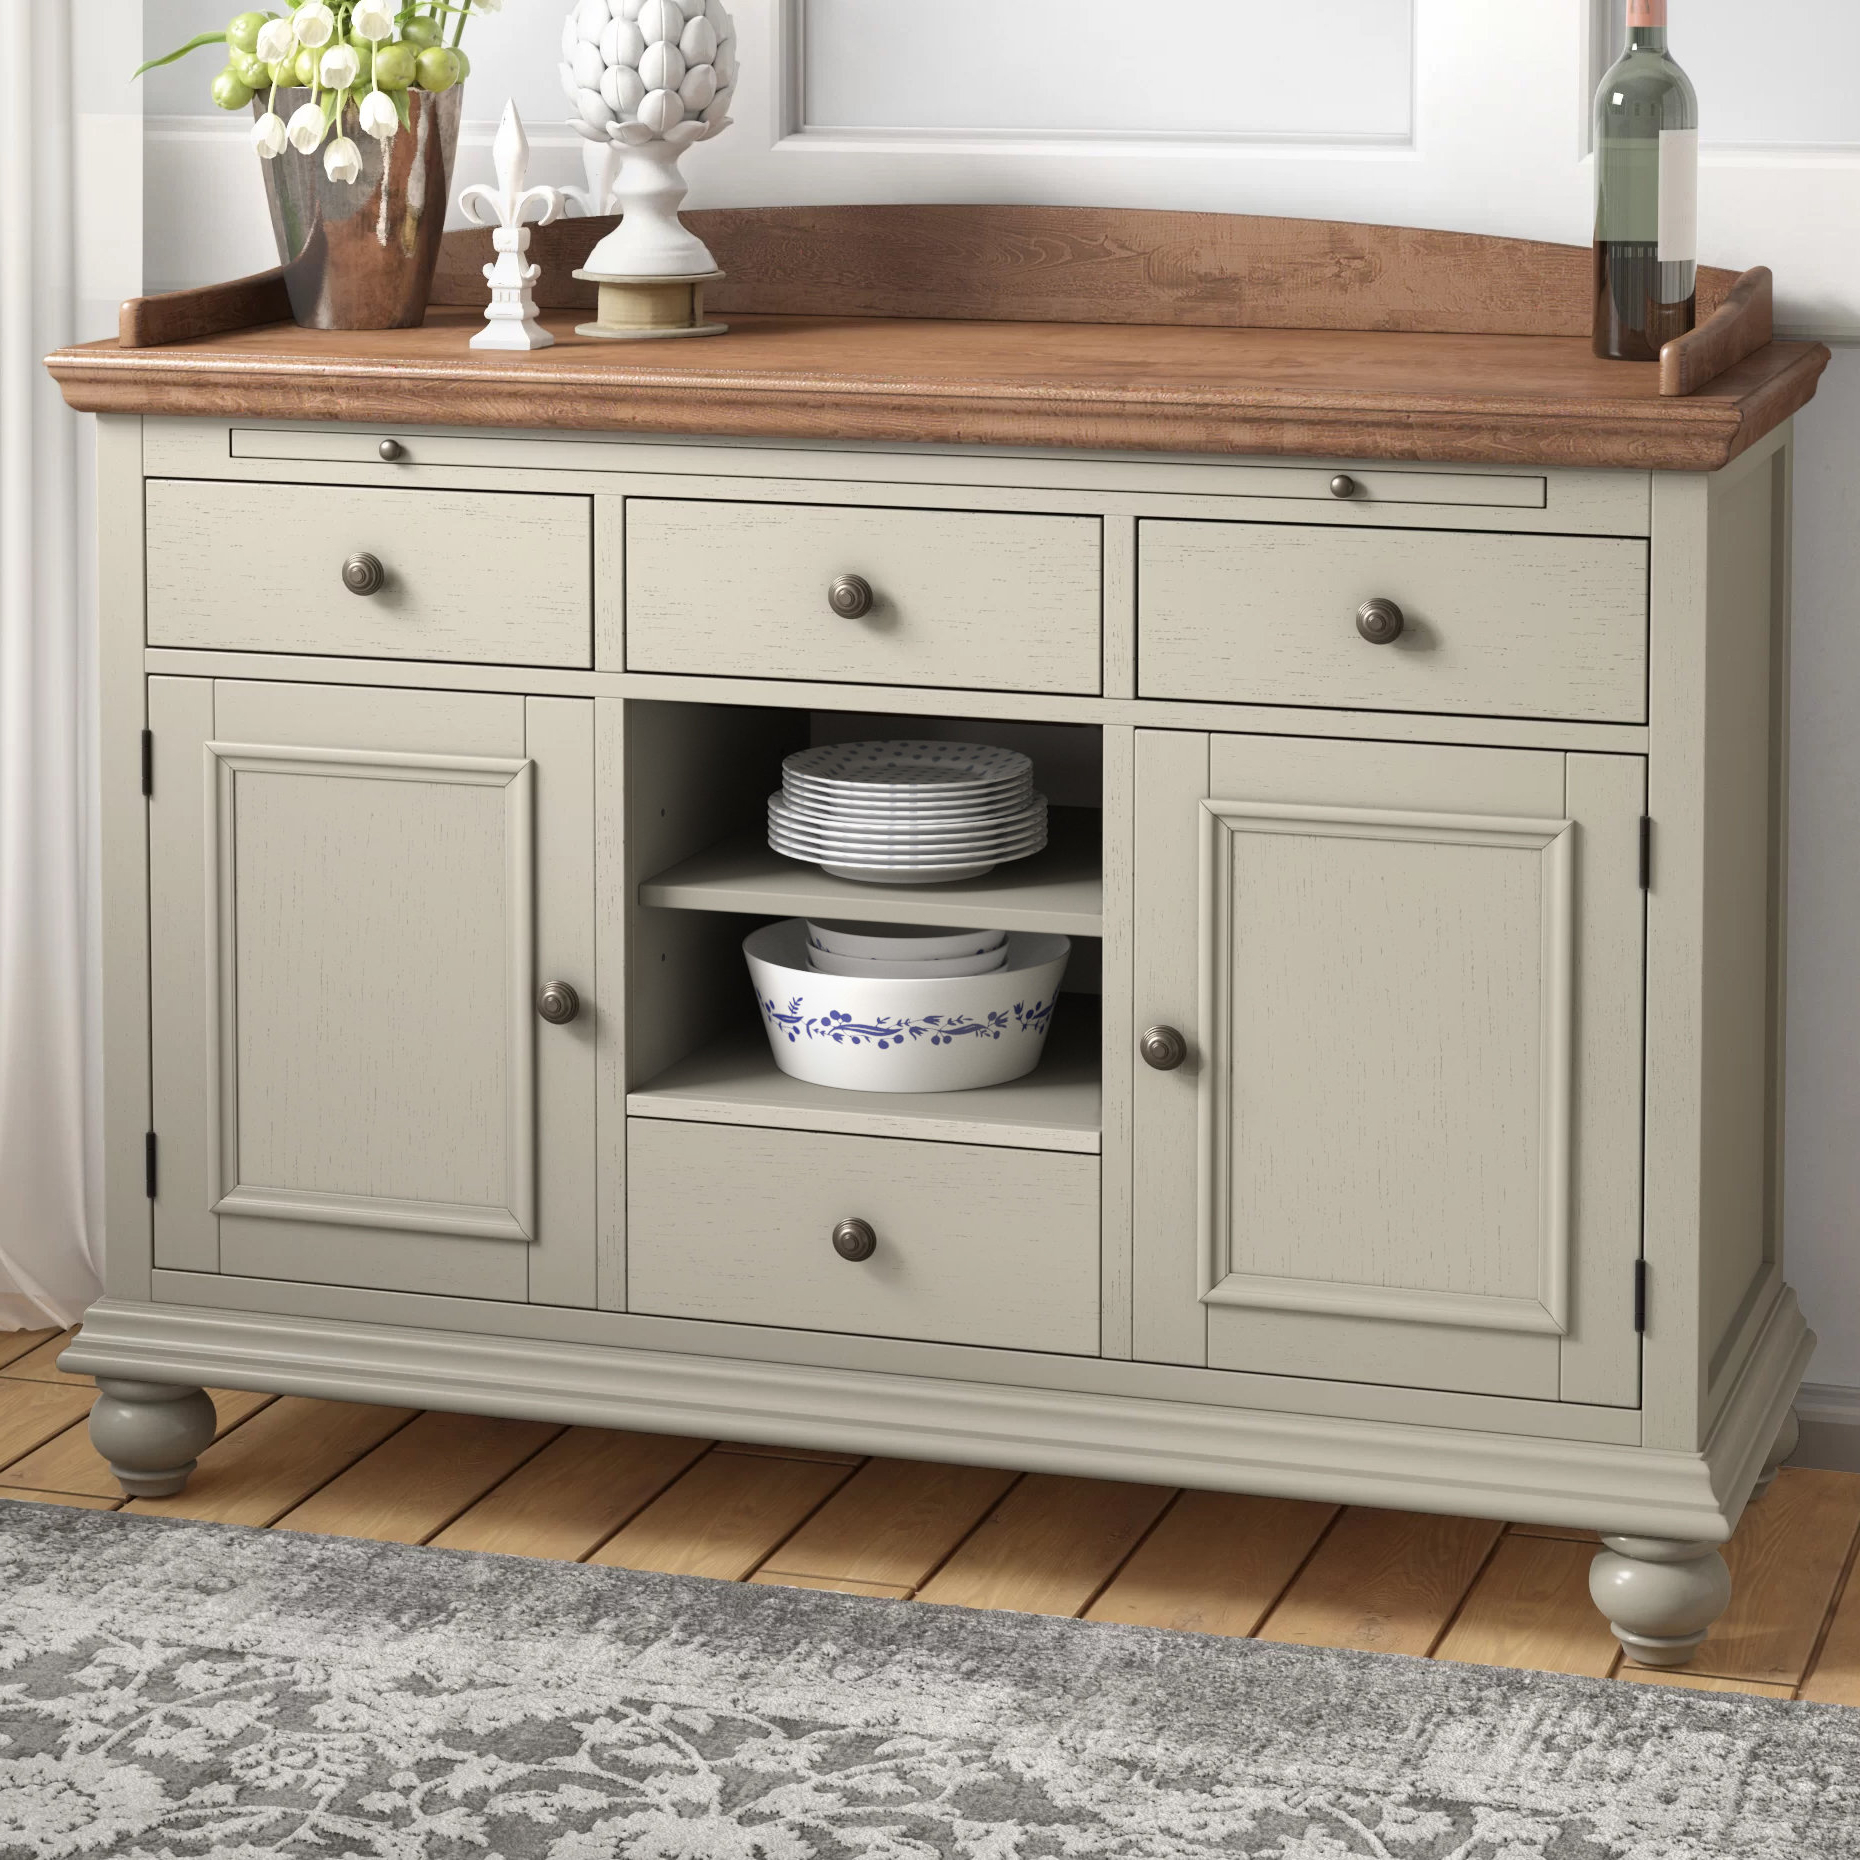 Most Recent Ruskin Sideboards With Regard To Ruskin Sideboard (View 1 of 20)